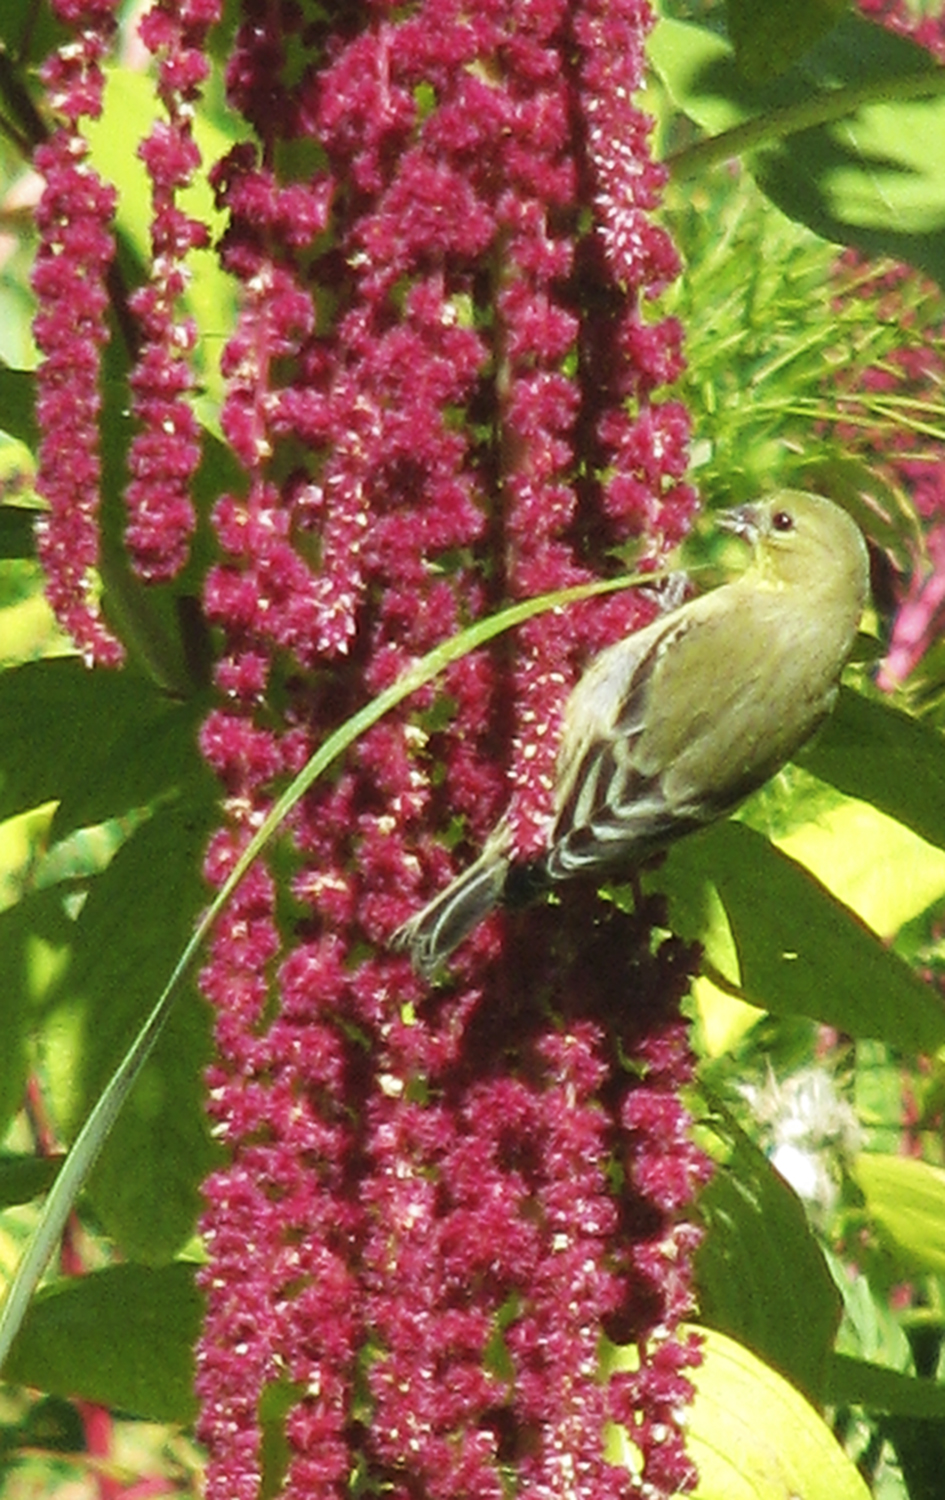 Bird feeding on Amaranthus caudatus. Photo credit: Diane Kennedy of Vegetariat (http://www.vegetariat.com).